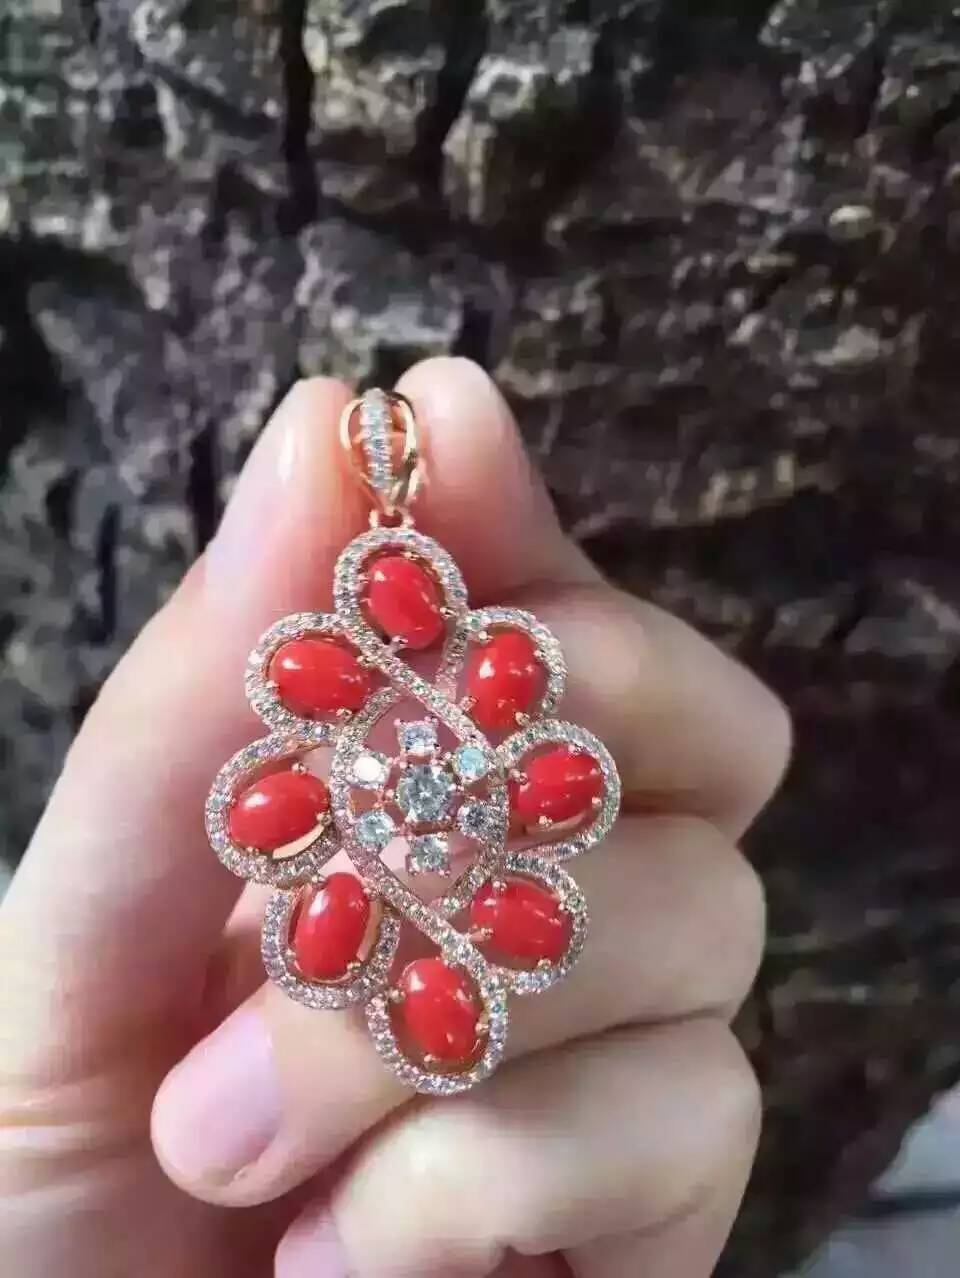 natural red precious coral pendant S925 silver Natural gemstone Pendant Necklace trendy Luxury round string women fine jewelrynatural red precious coral pendant S925 silver Natural gemstone Pendant Necklace trendy Luxury round string women fine jewelry